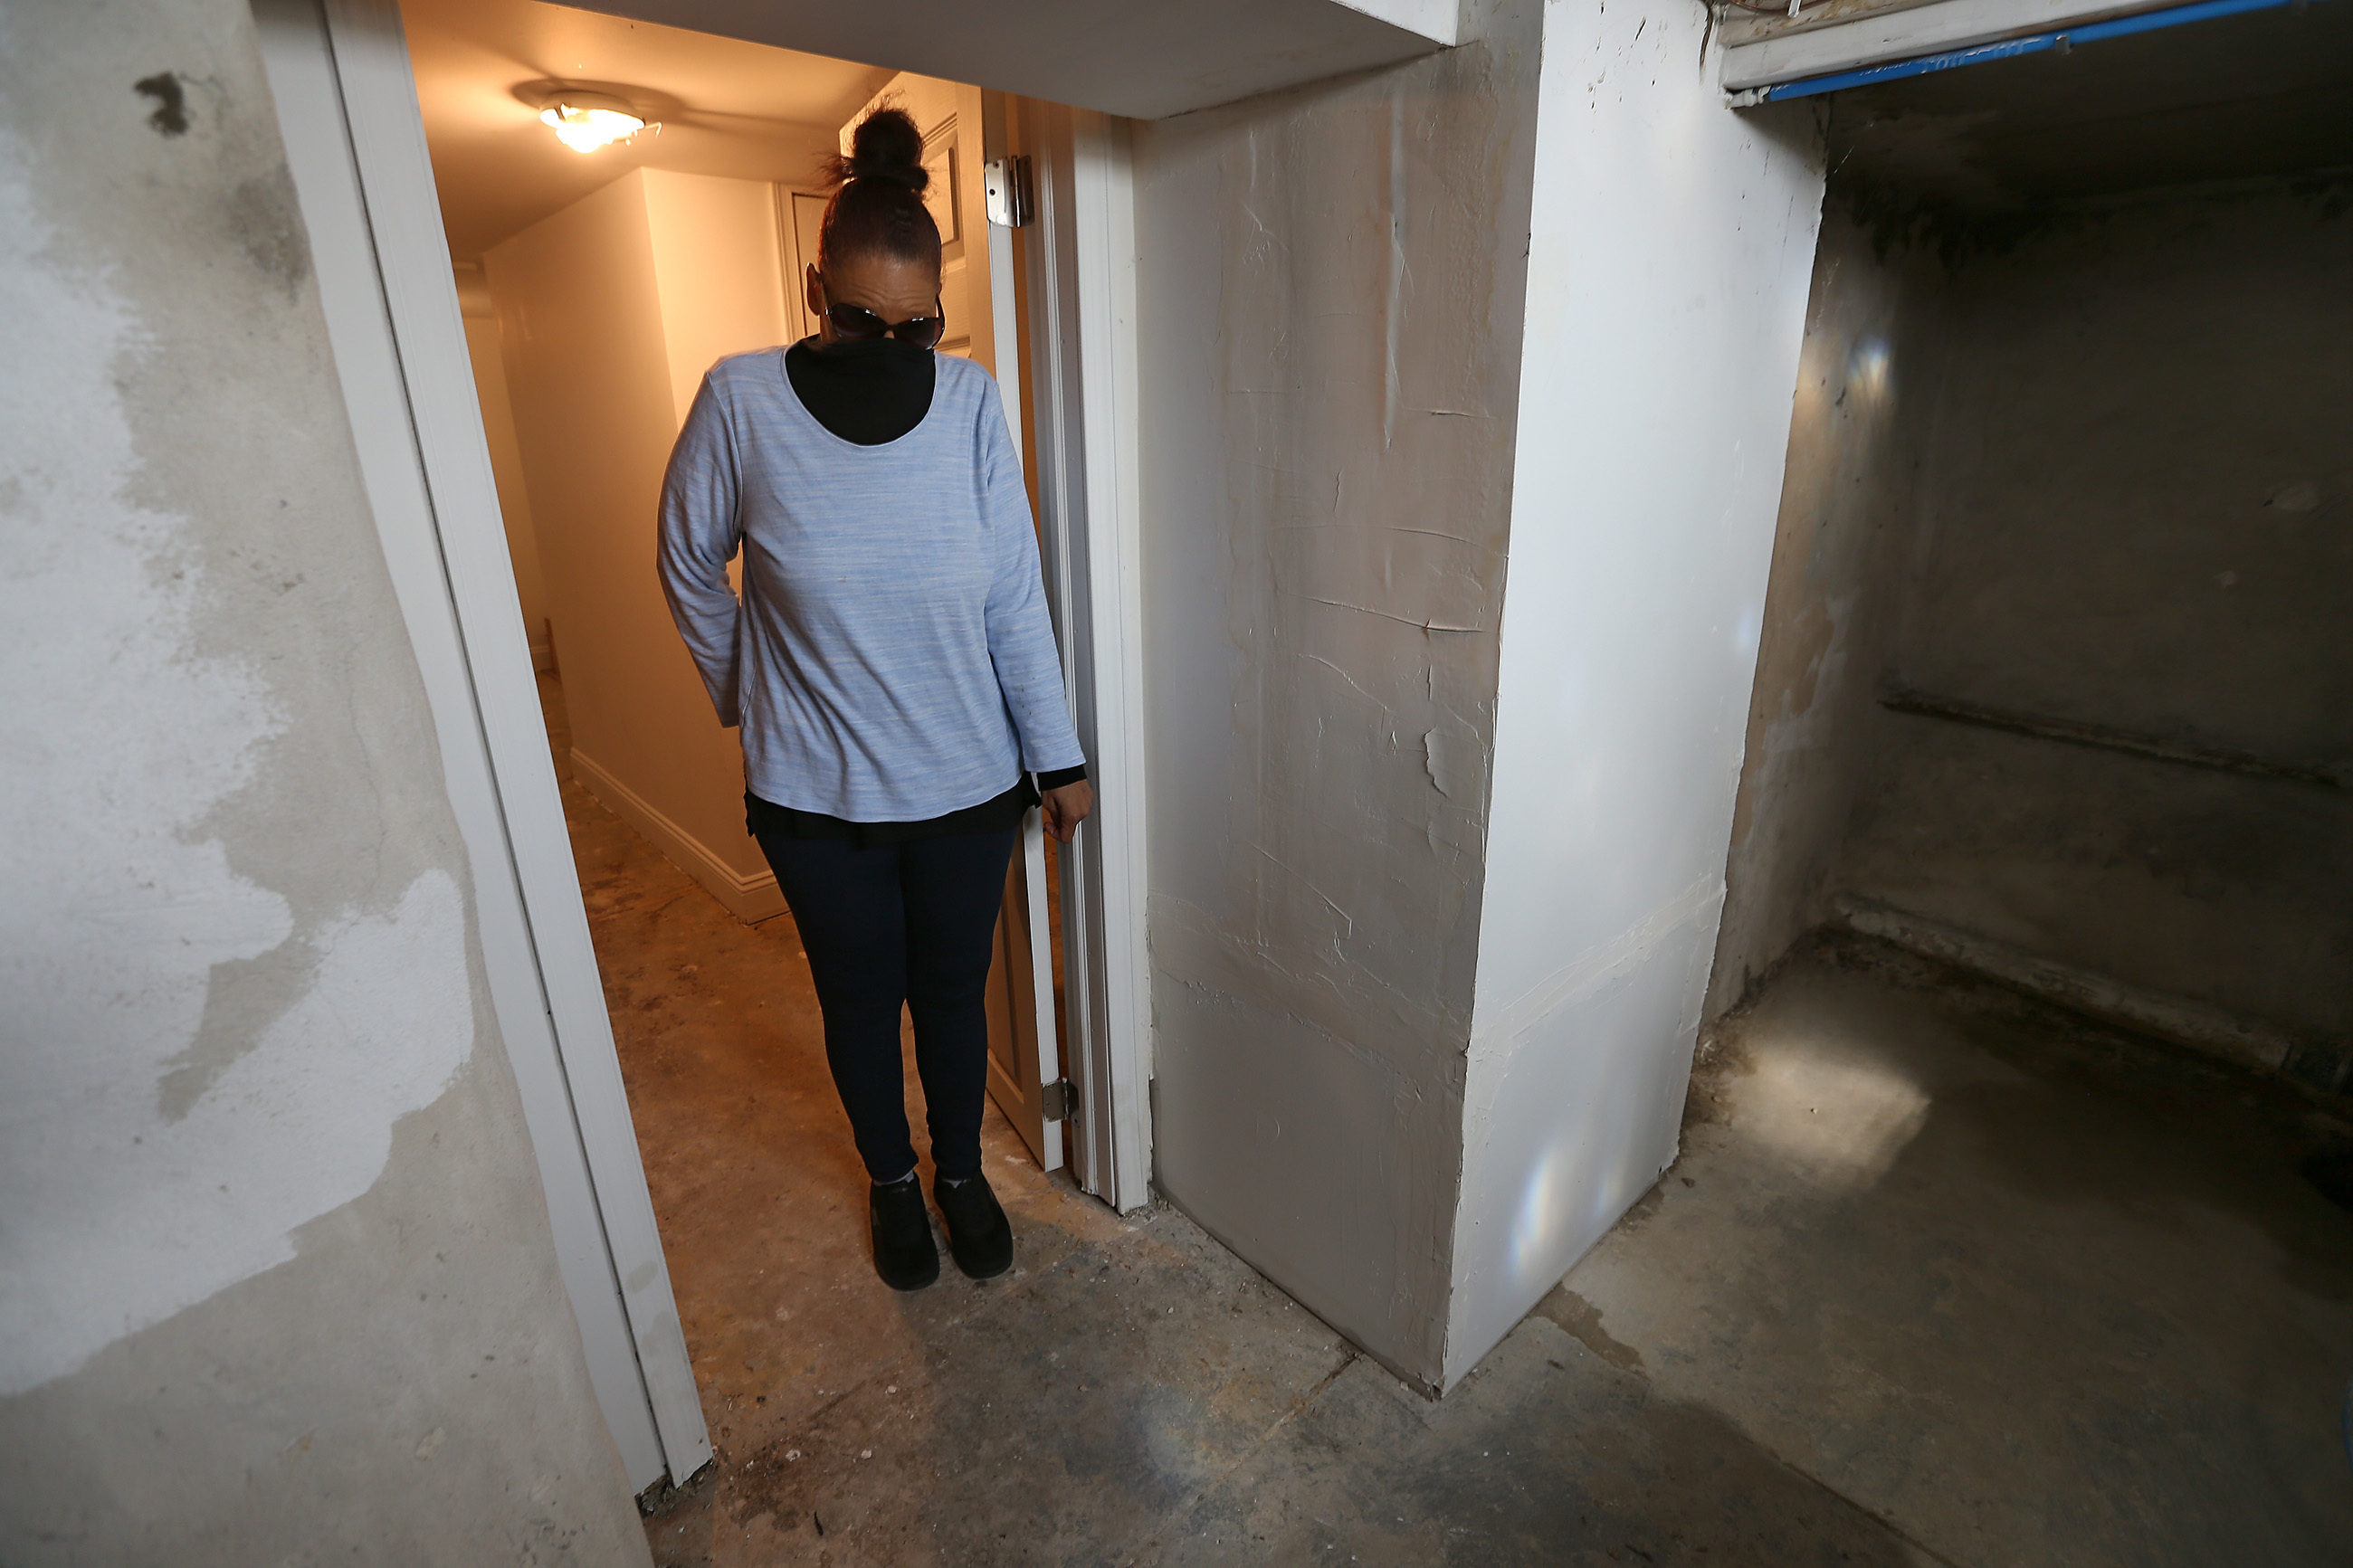 Linda Watson covers her nose because she can´t stand the smell after sewage backed up into the basement of the house she is renting in the Port Richmond section of Philadelphia. Watson´s landlord sent her an eviction notice after she withheld rent due to the conditions.